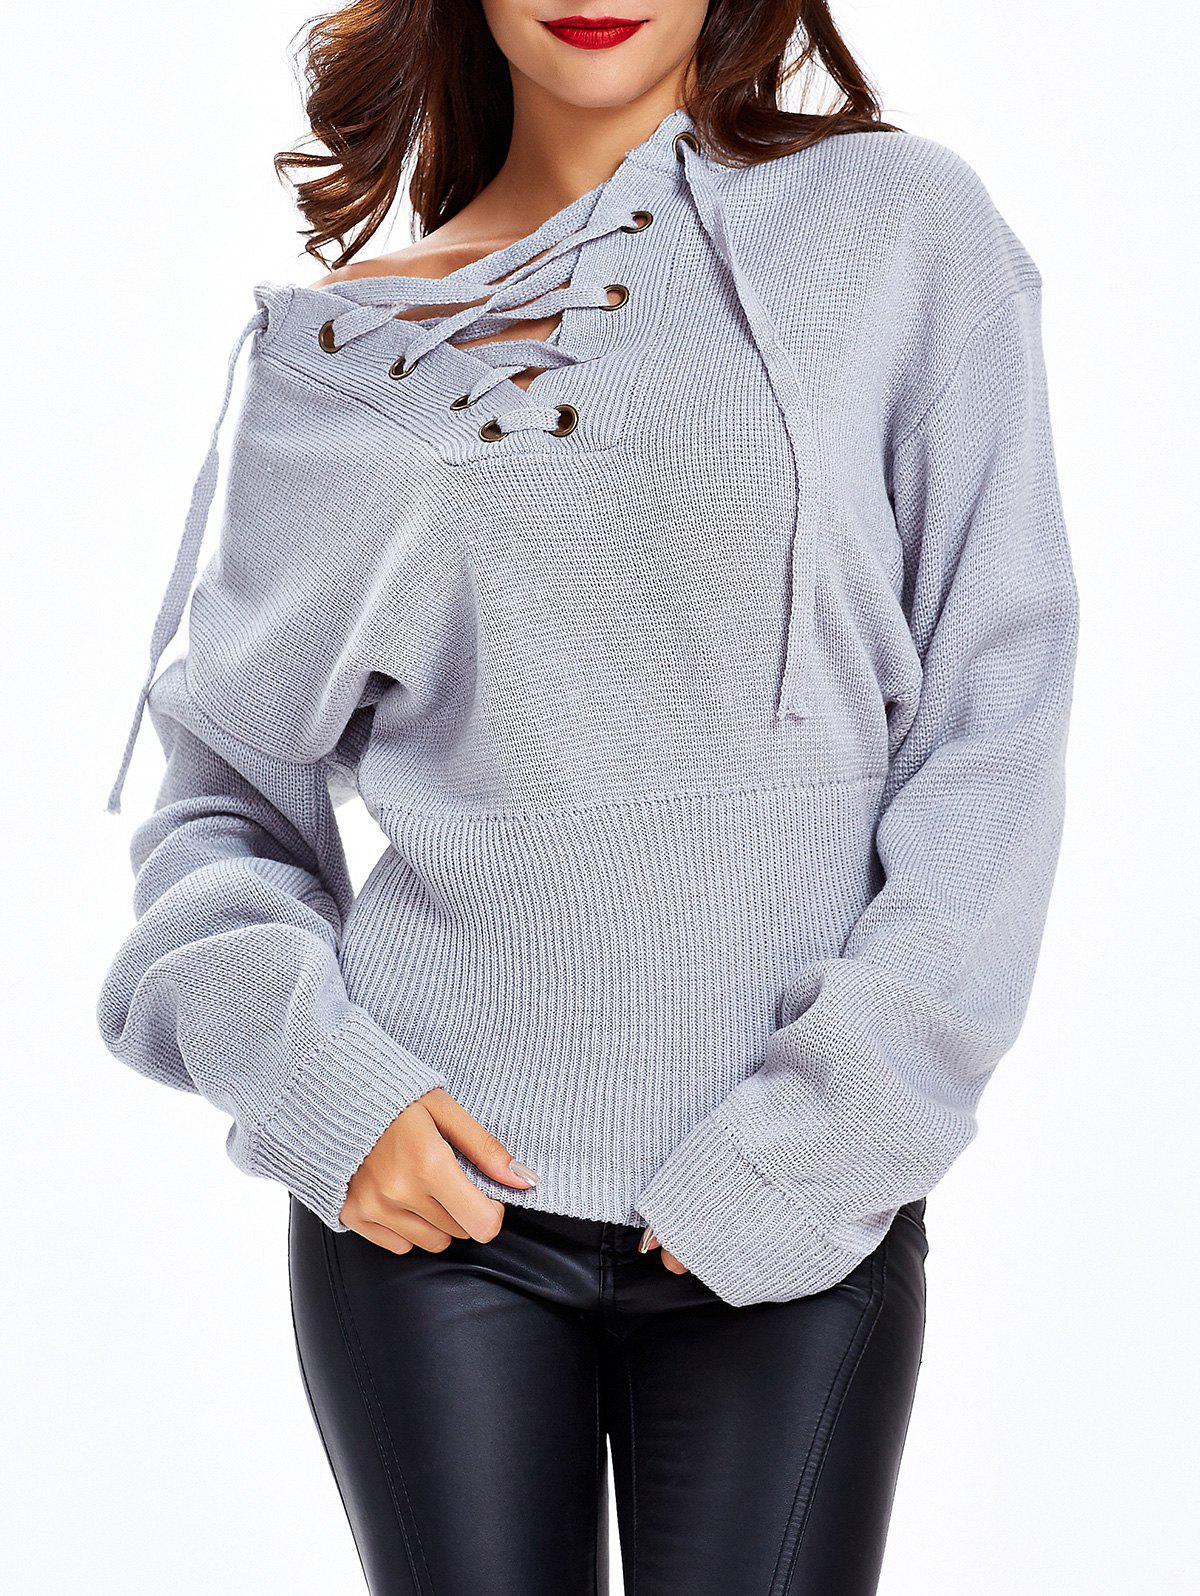 Discount Tied-Up Criss-Cross Loose Fitting Sweater